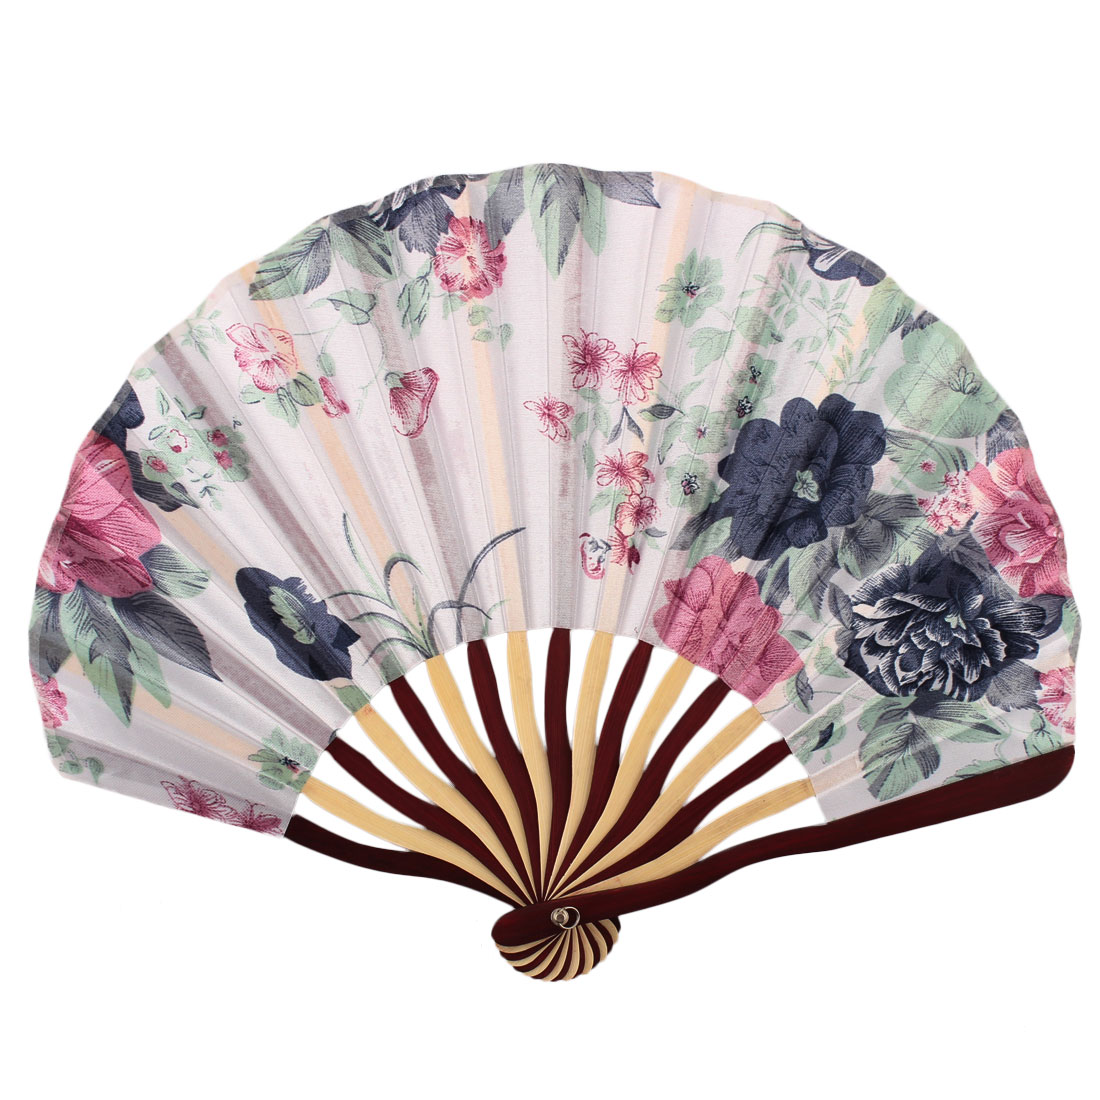 Lady Bamboo Frame Flower Pattern Dancing Wedding Party Folding Hand Fan White